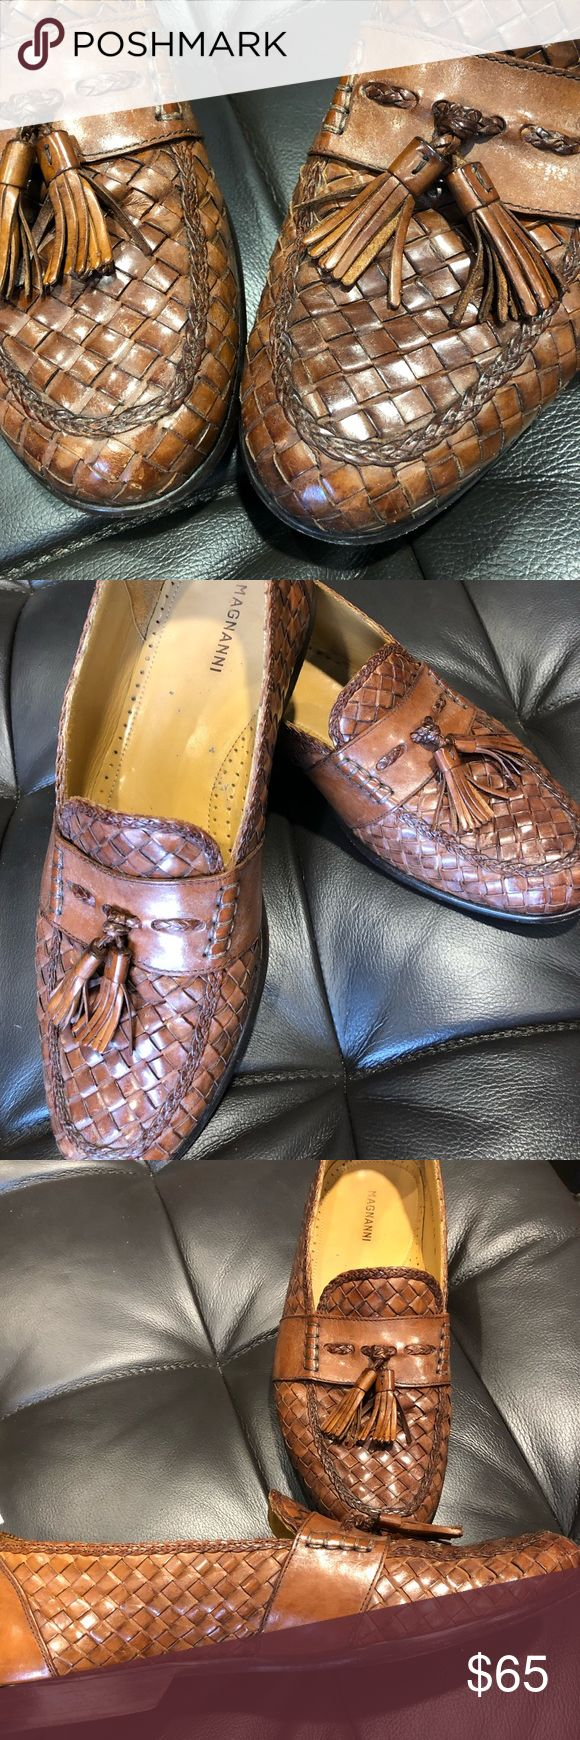 Magnanni men's loafers size 11 Italian made, great shape and very comfortable....